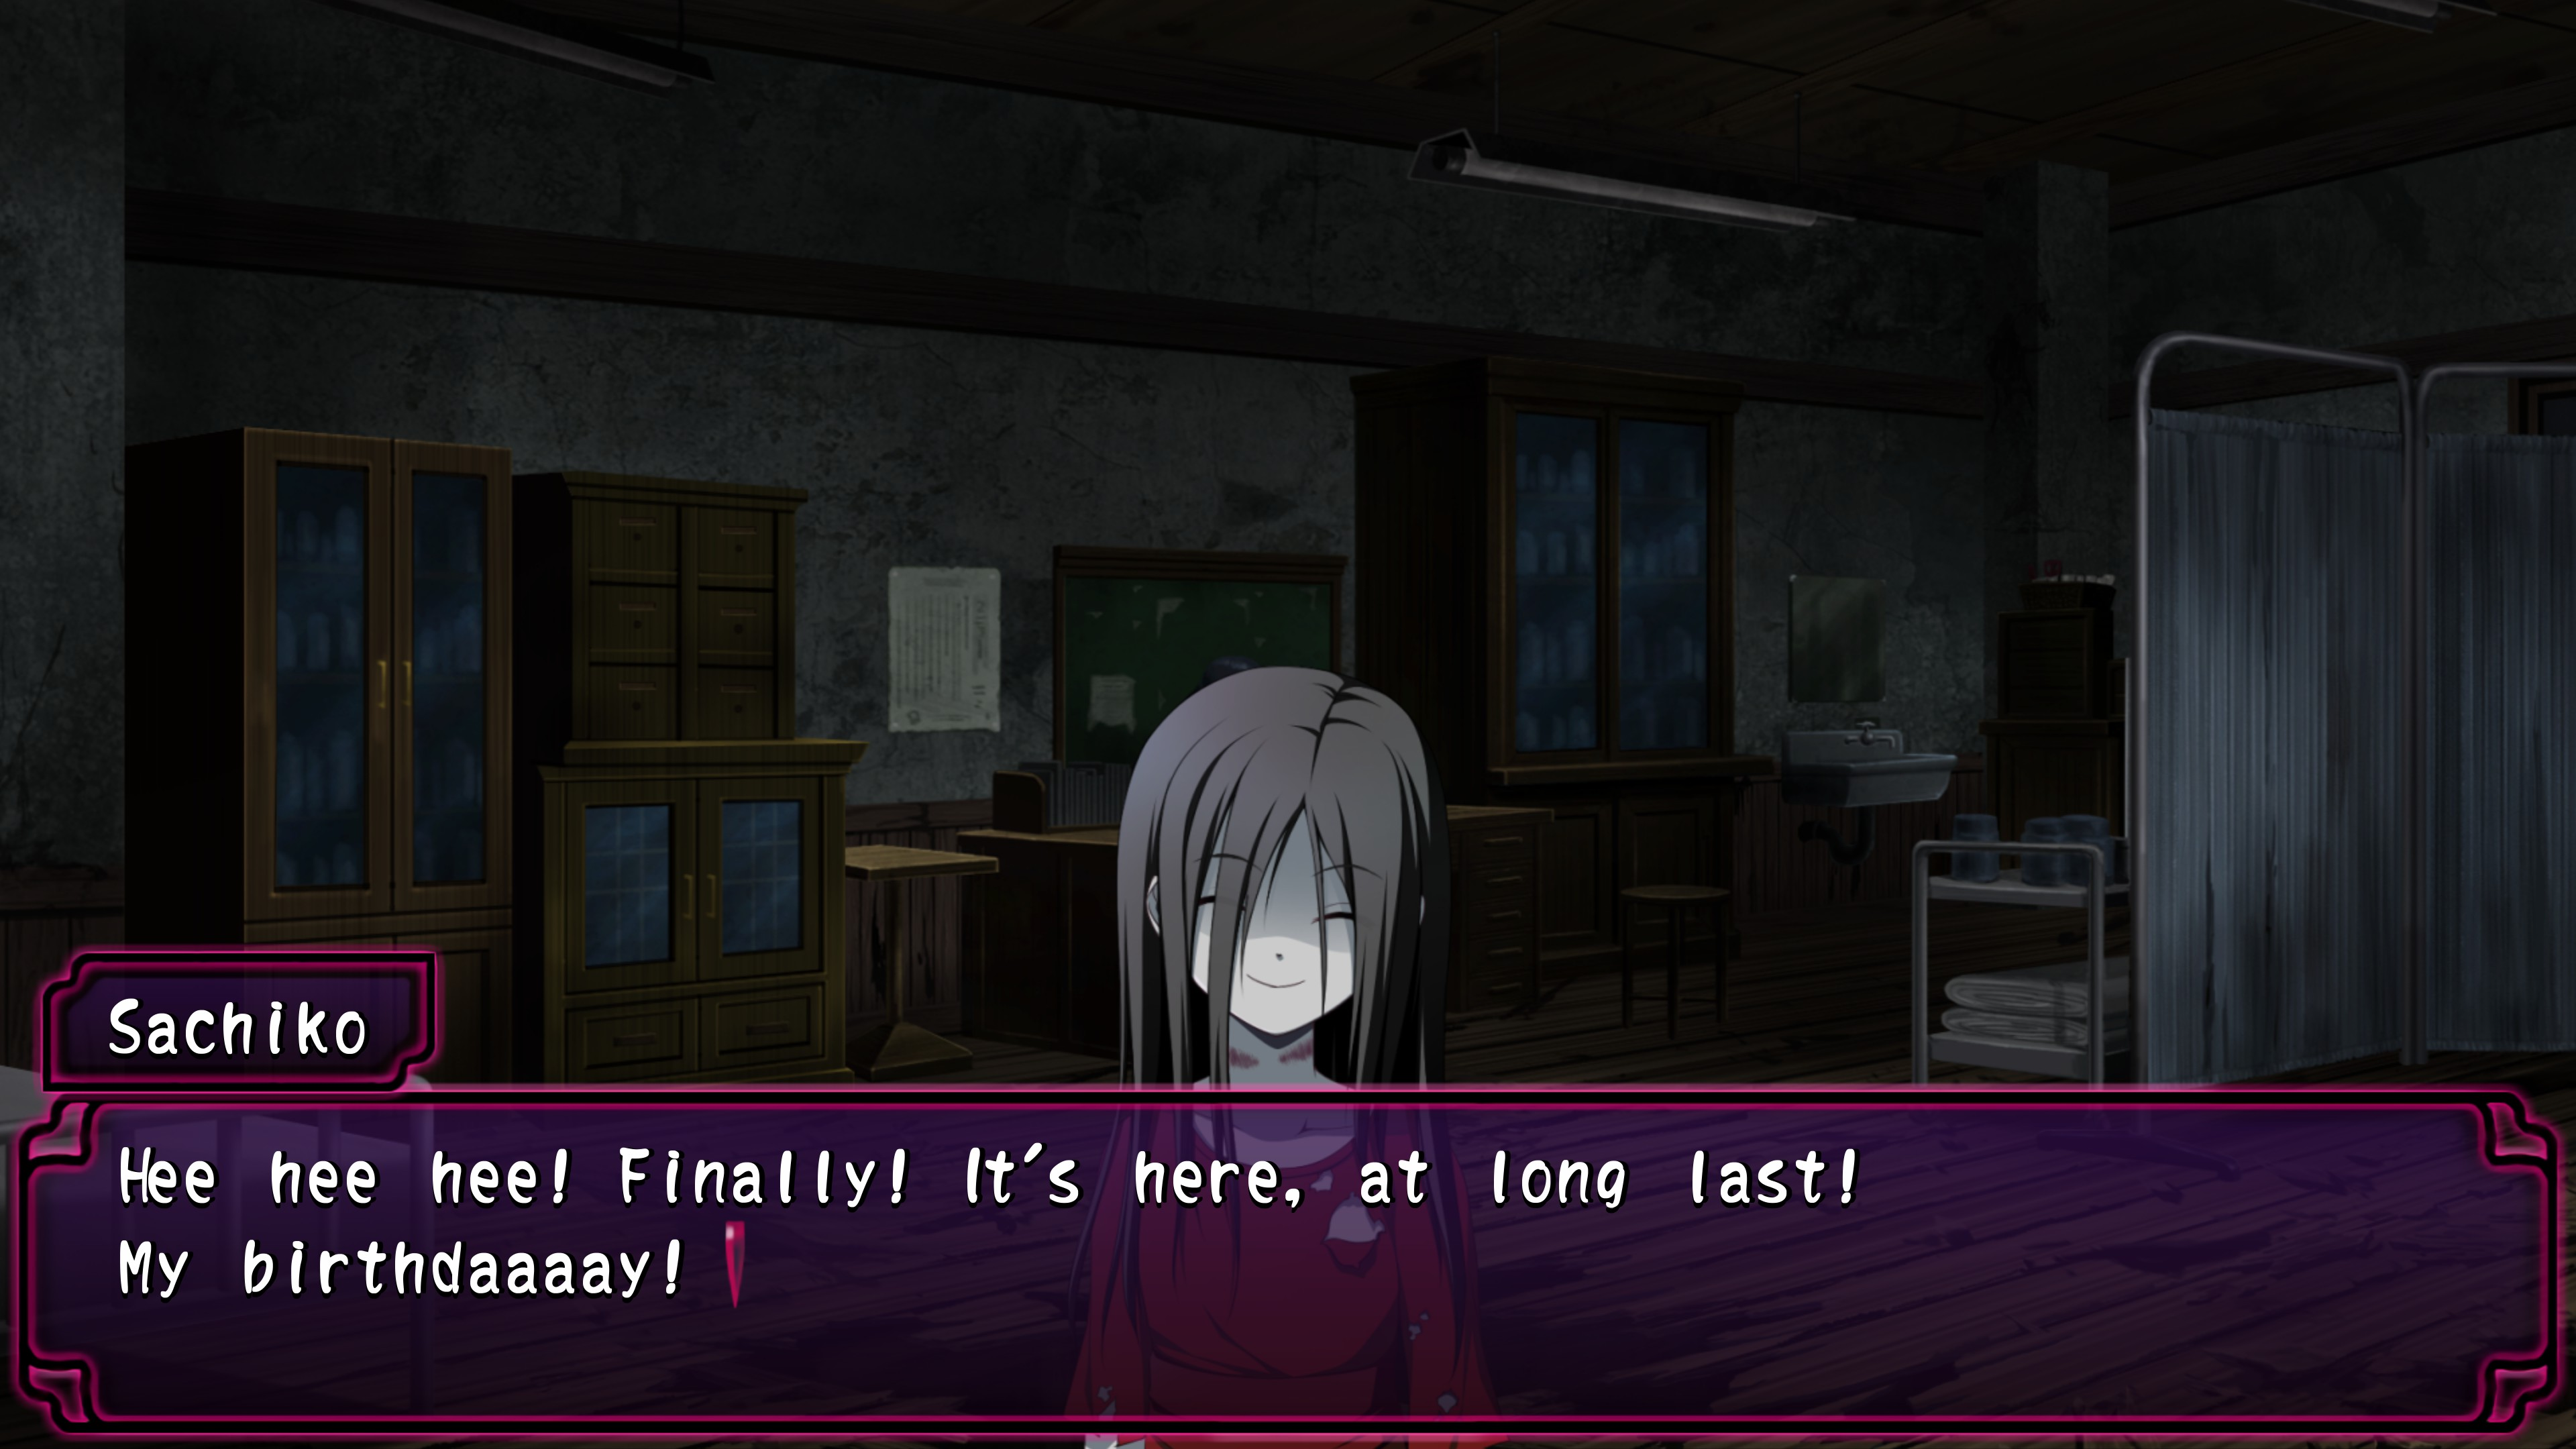 Corpse Party Sweet Sachiko S Hysteric Birthday Bash Review